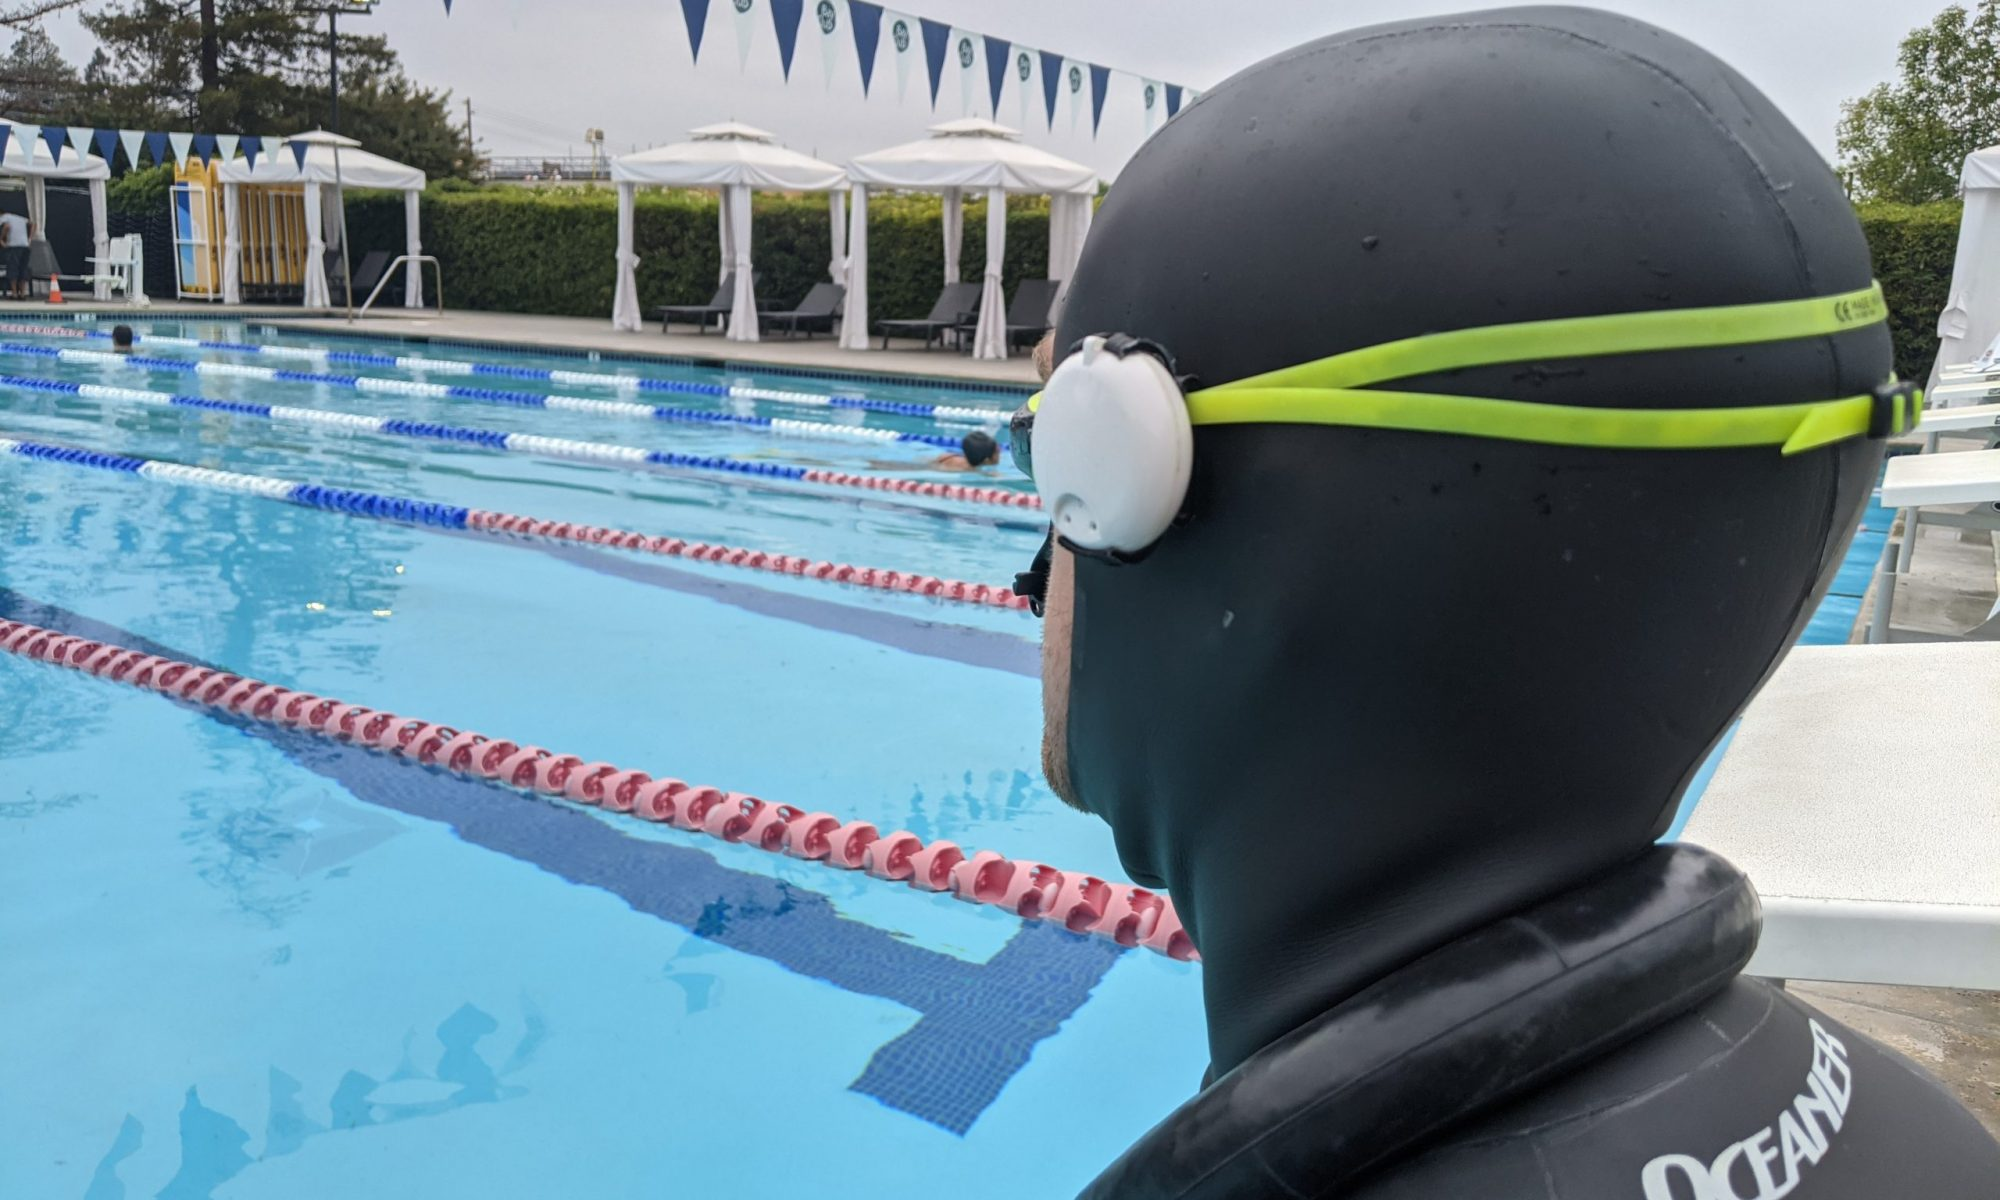 Freediving computer with depth alarms